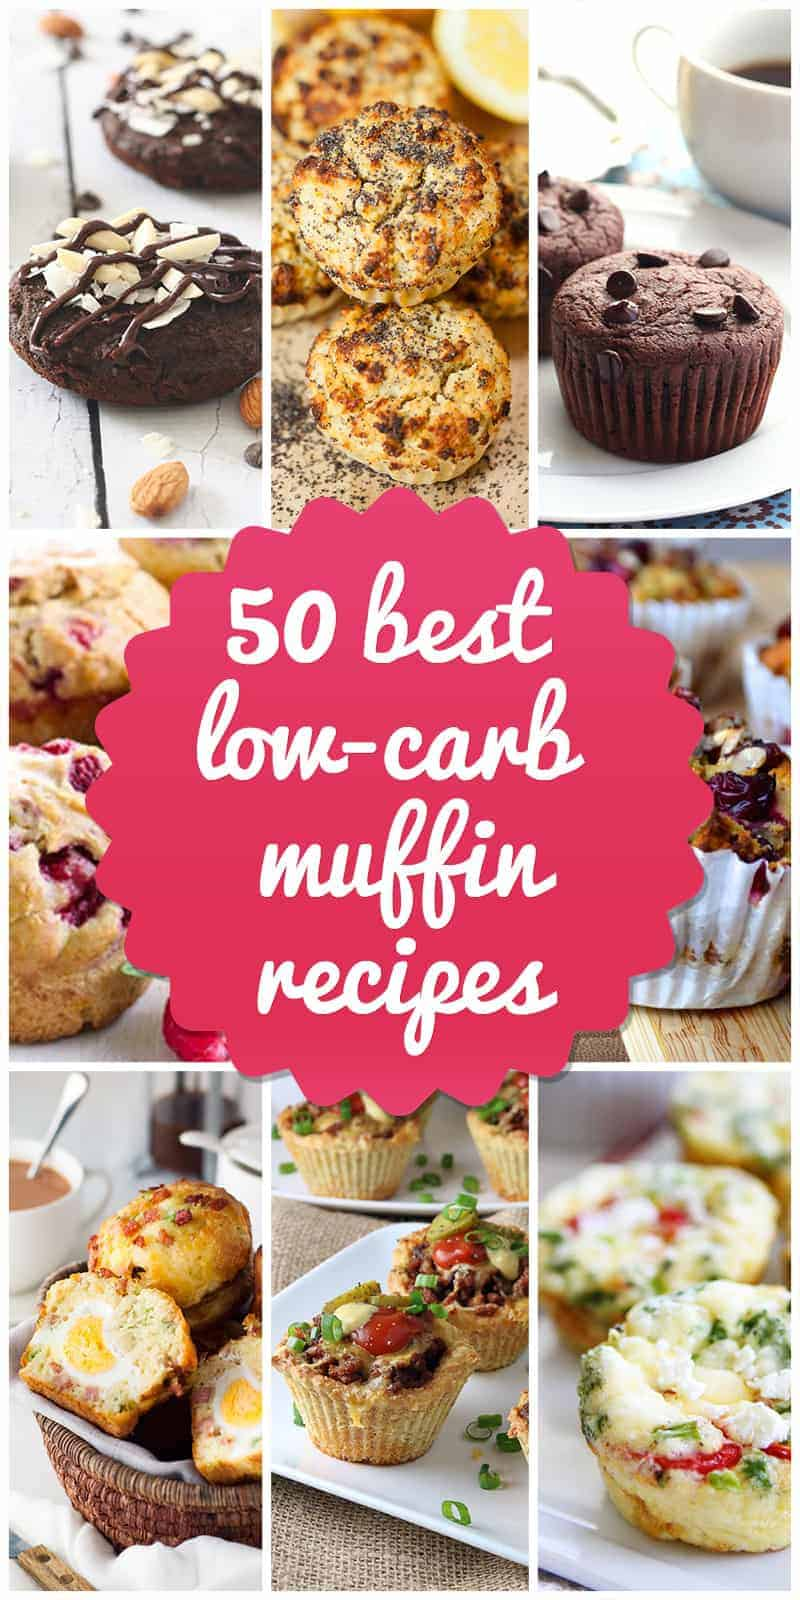 50 Best Low-Carb Muffin Recipes for 2018